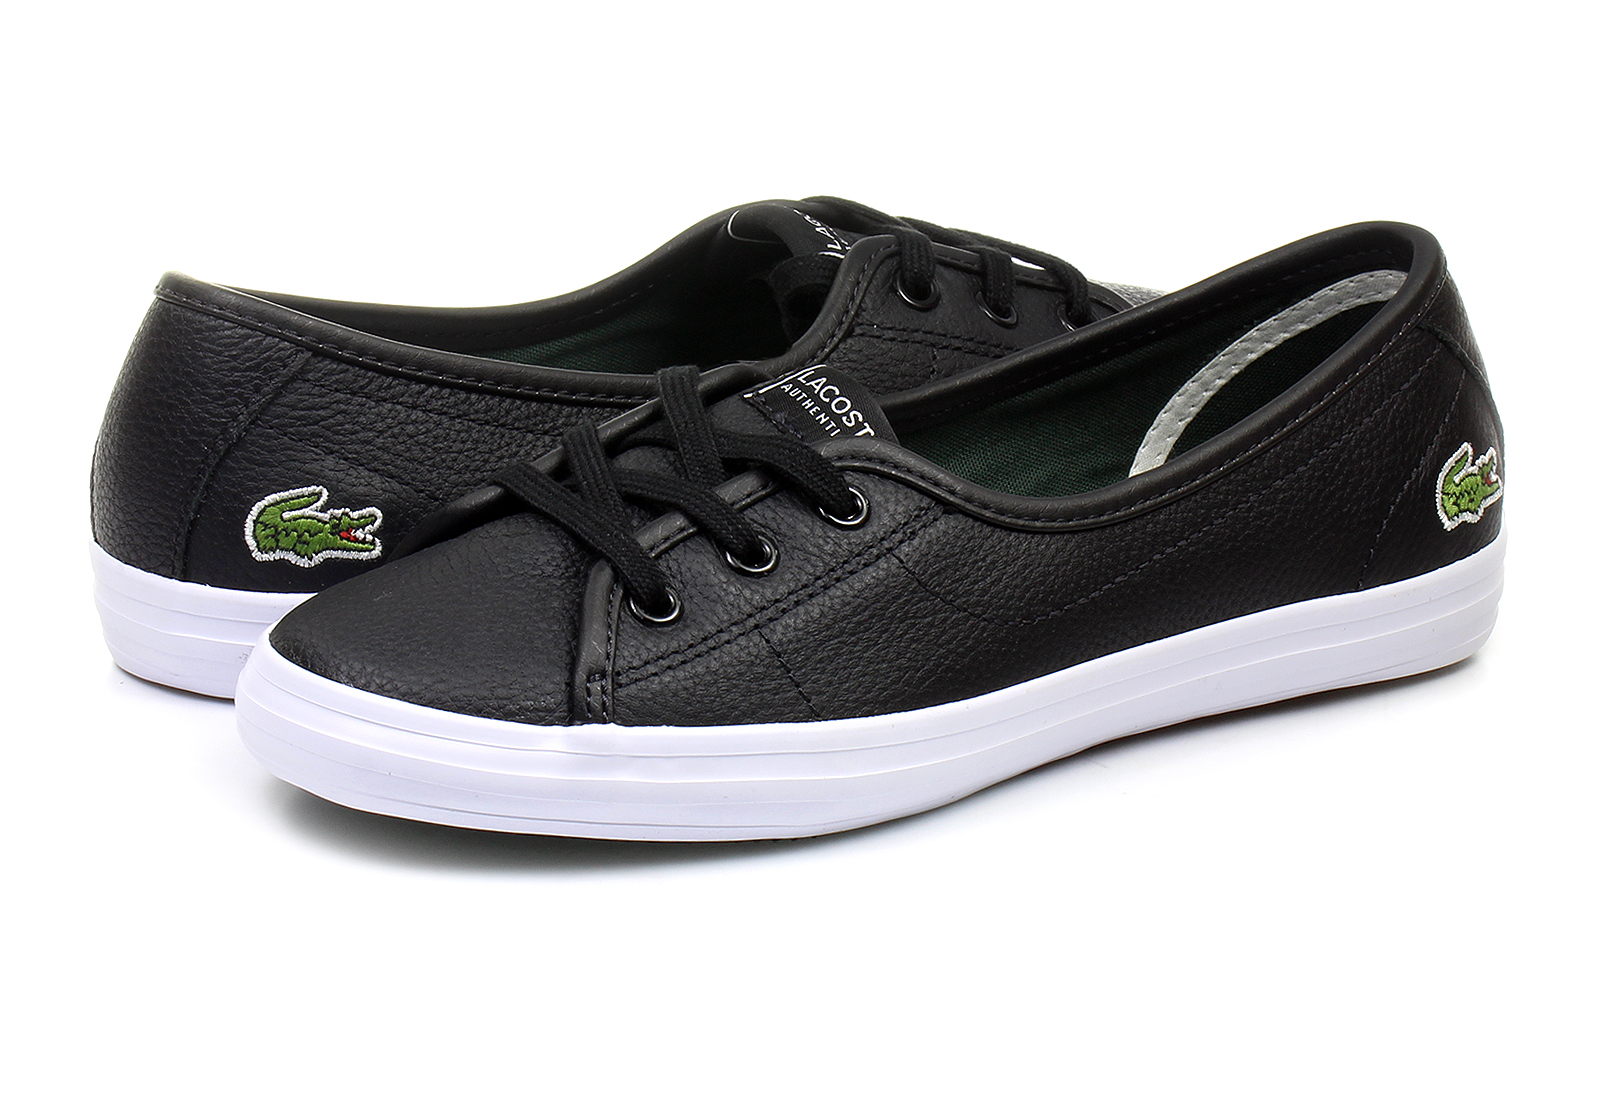 Lacoste Cipő - ziane chunky - 171spw1143-02h - Office Shoes ... 6a88b5227a